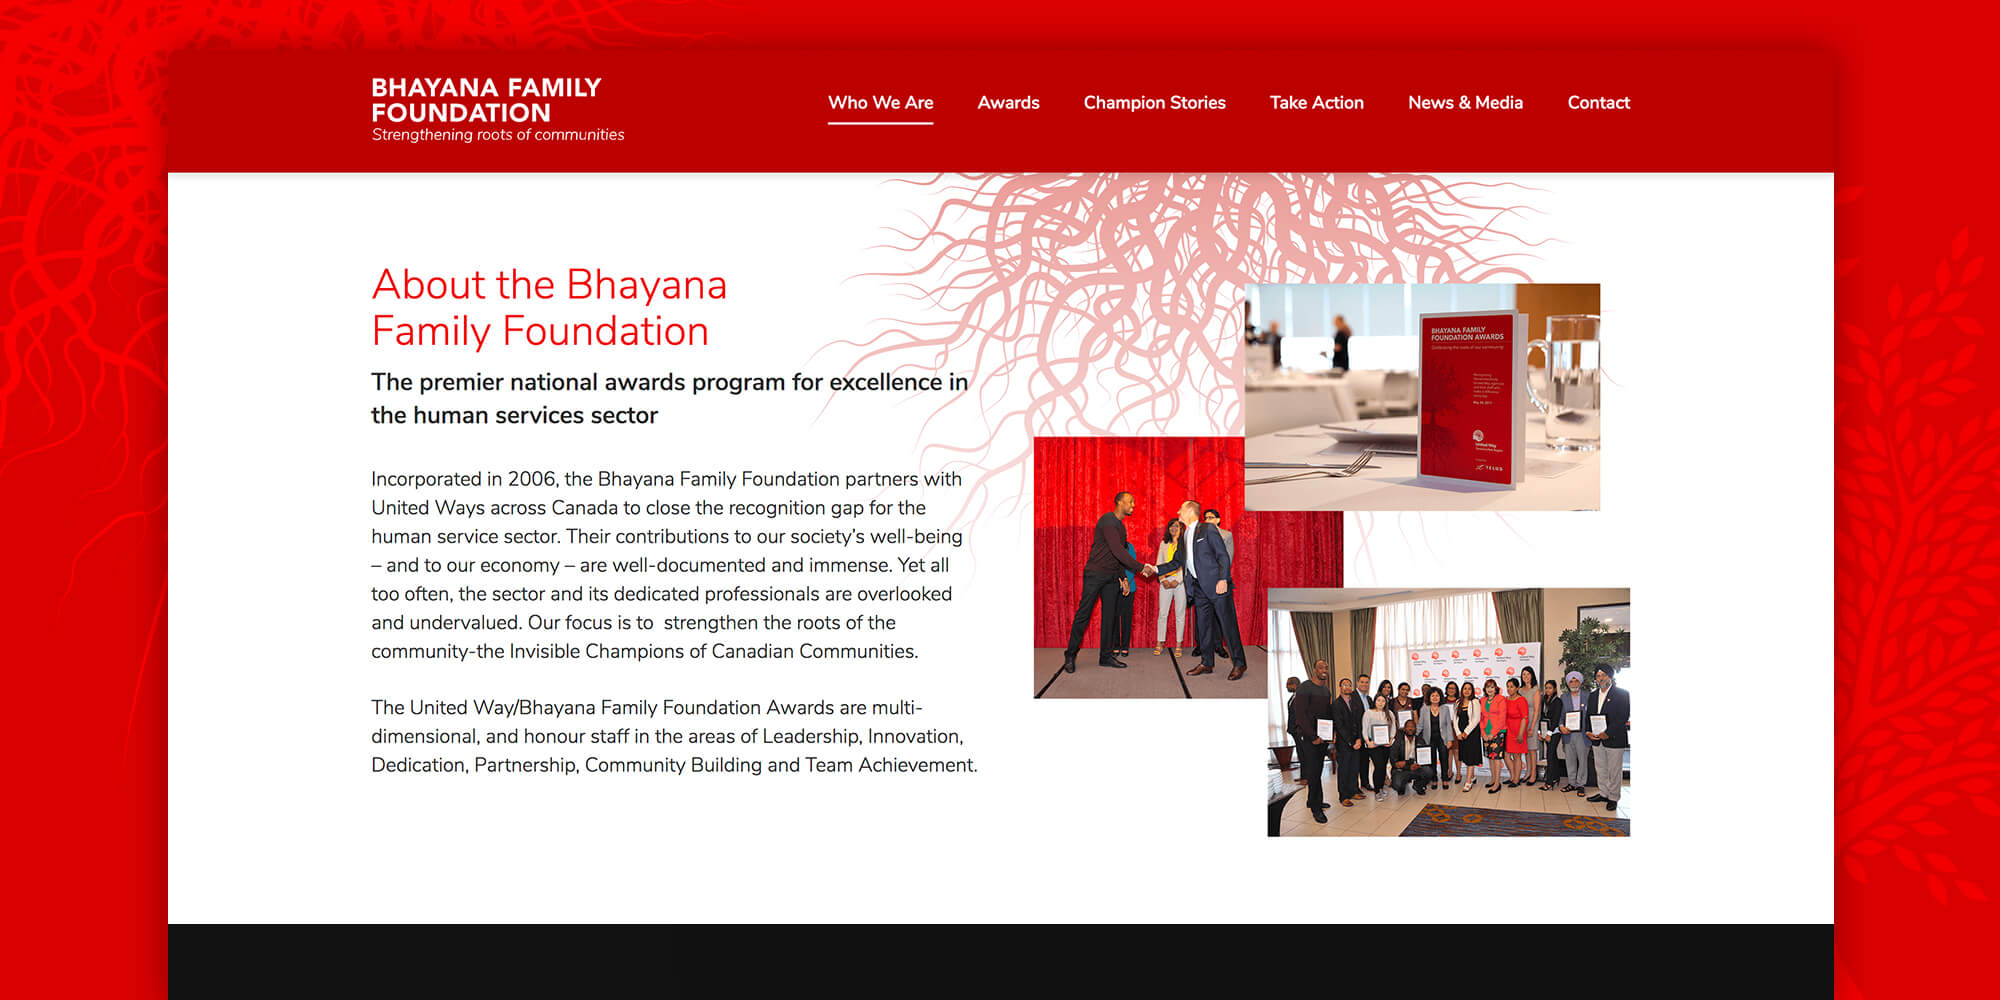 Bhayana Family Foundation